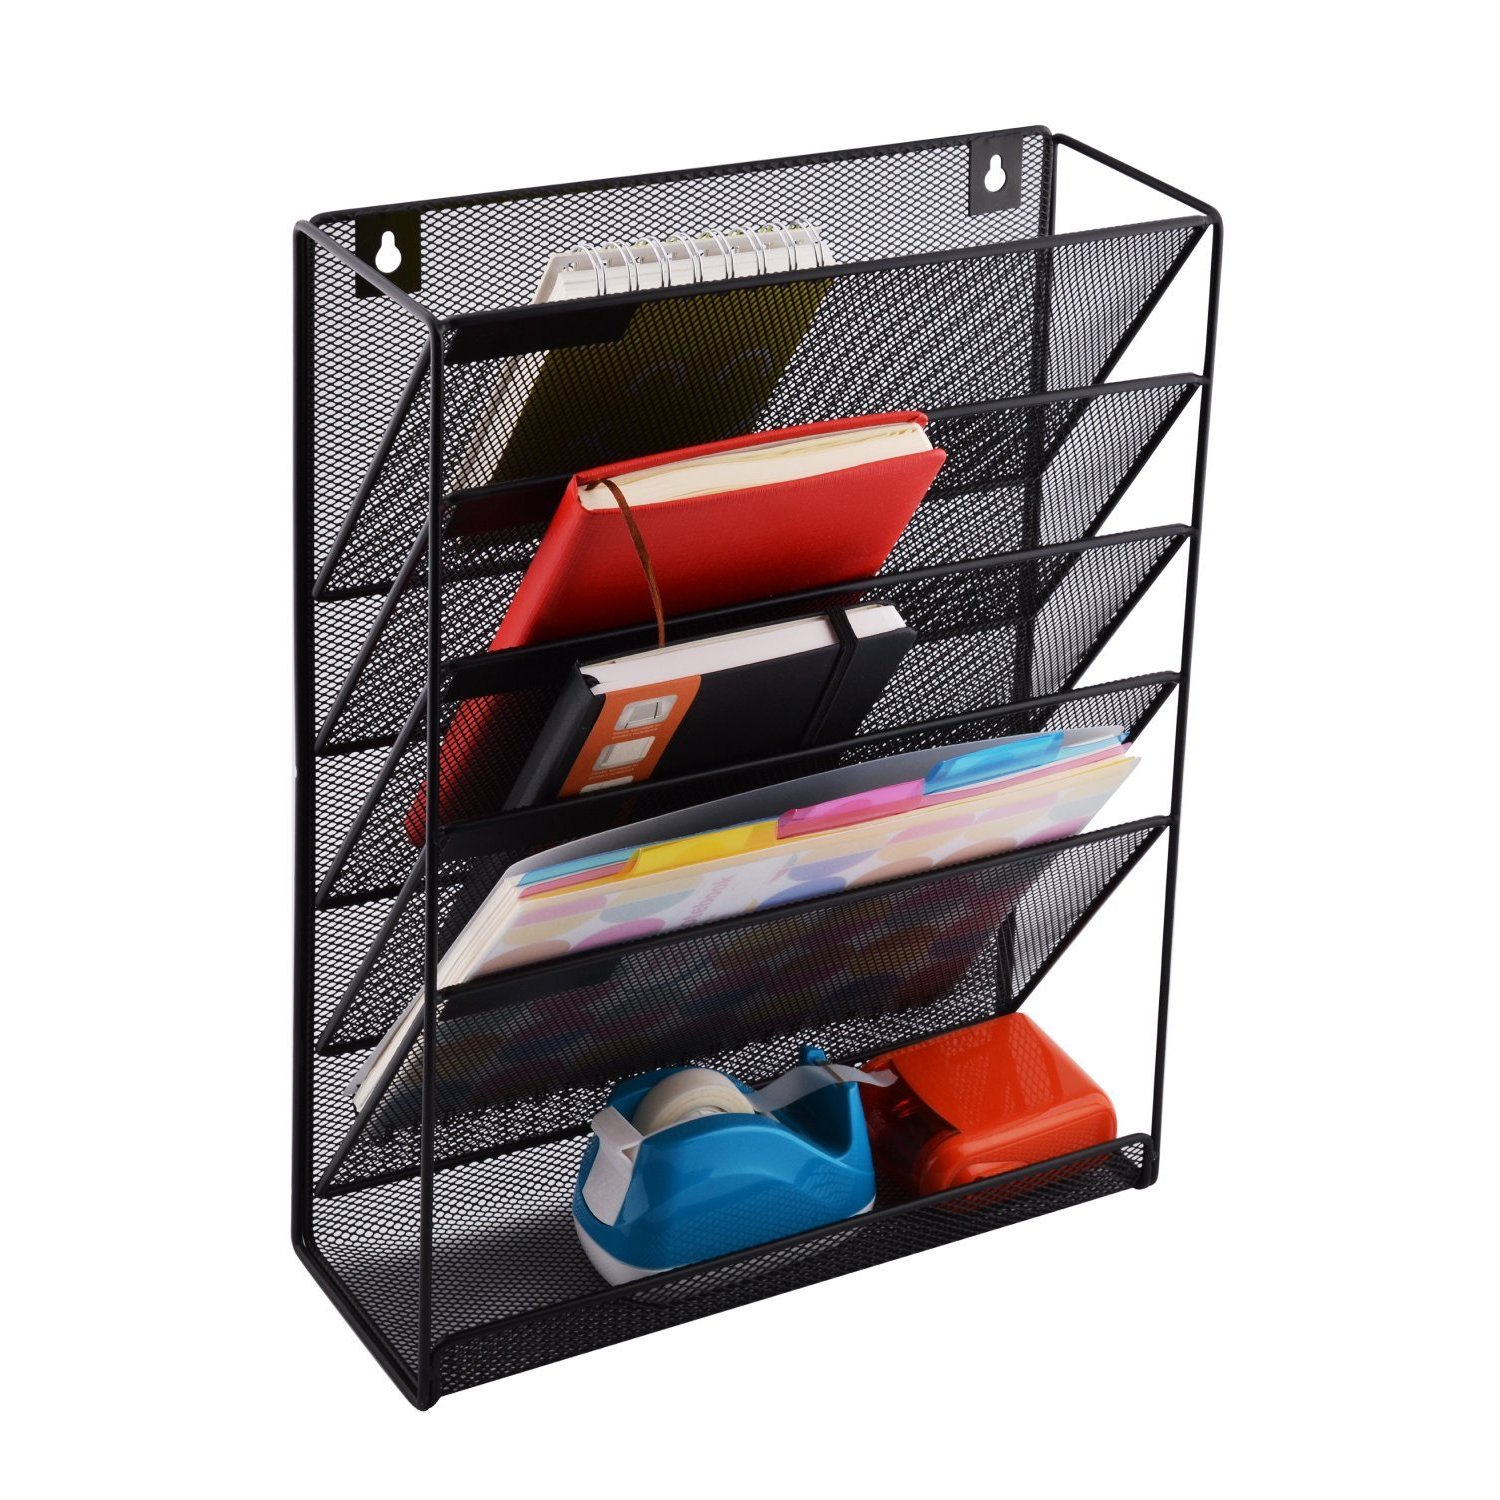 Wall Hanging File Holder Organizer for Office Home, 5-Tier Black Metal- Yuugen Products by Yuugen Products (Image #5)